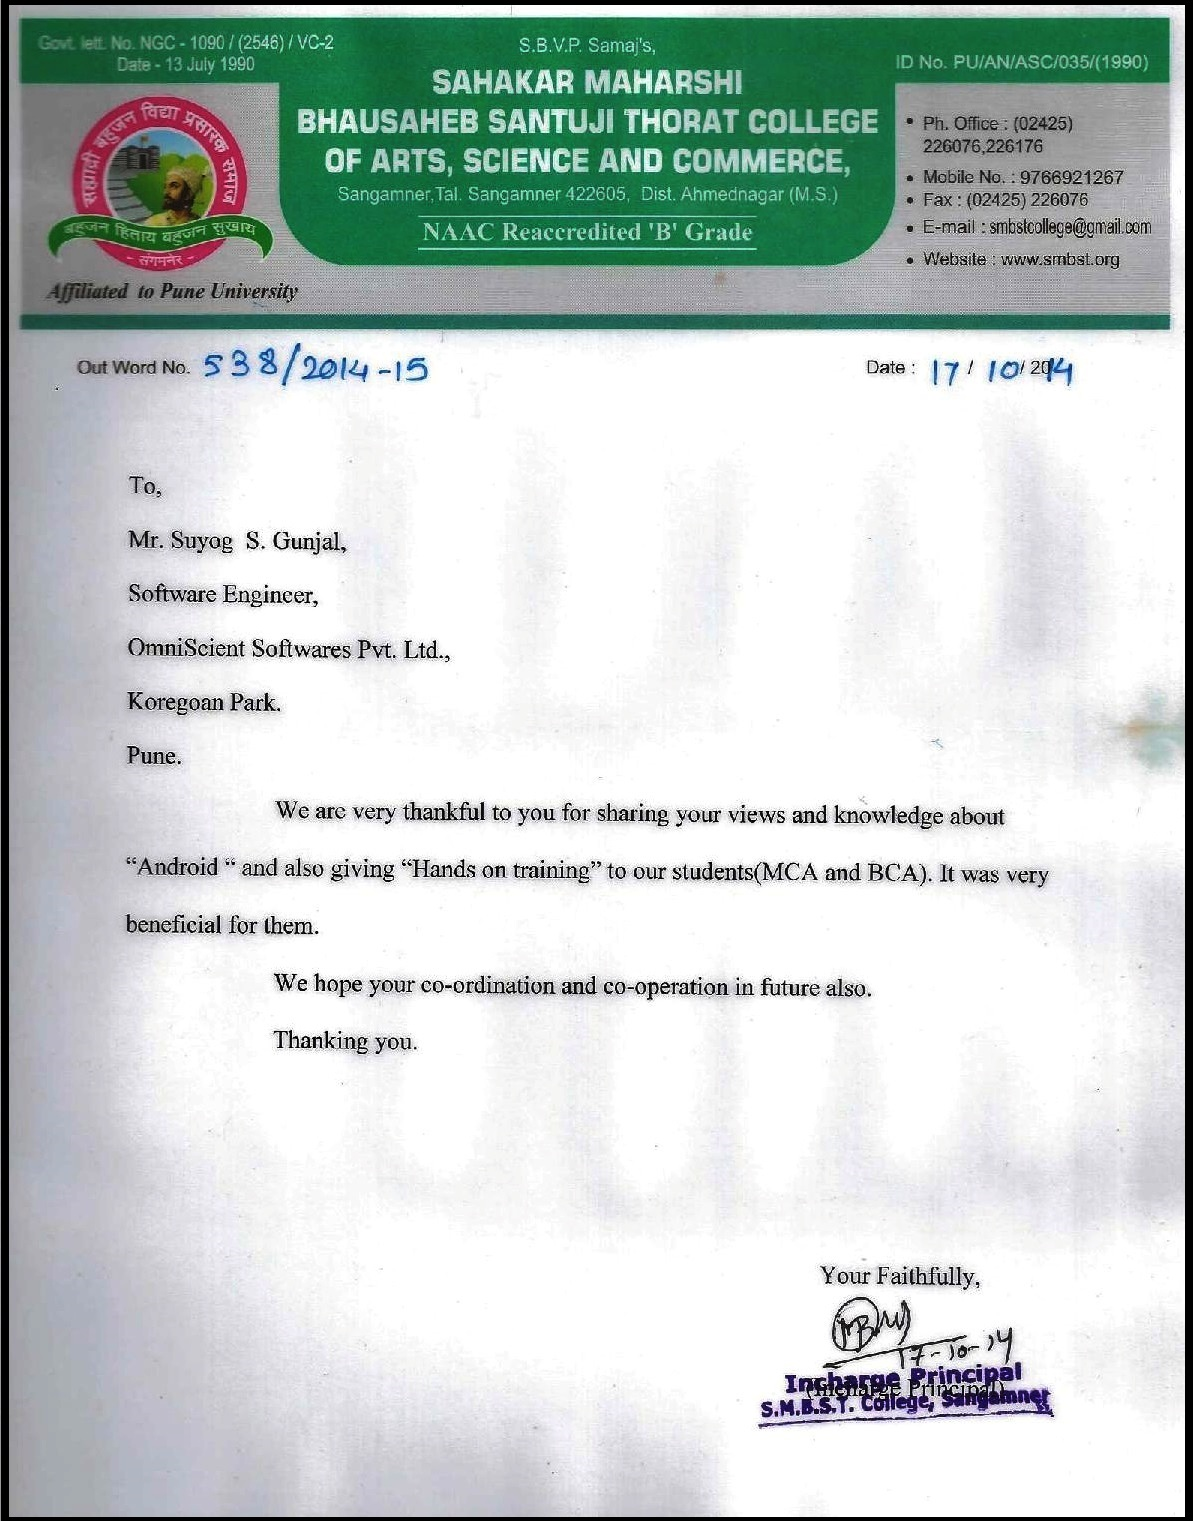 Psychic technologies suyog gunjal android seminar experience letter by sahyadri college 2014 yadclub Image collections